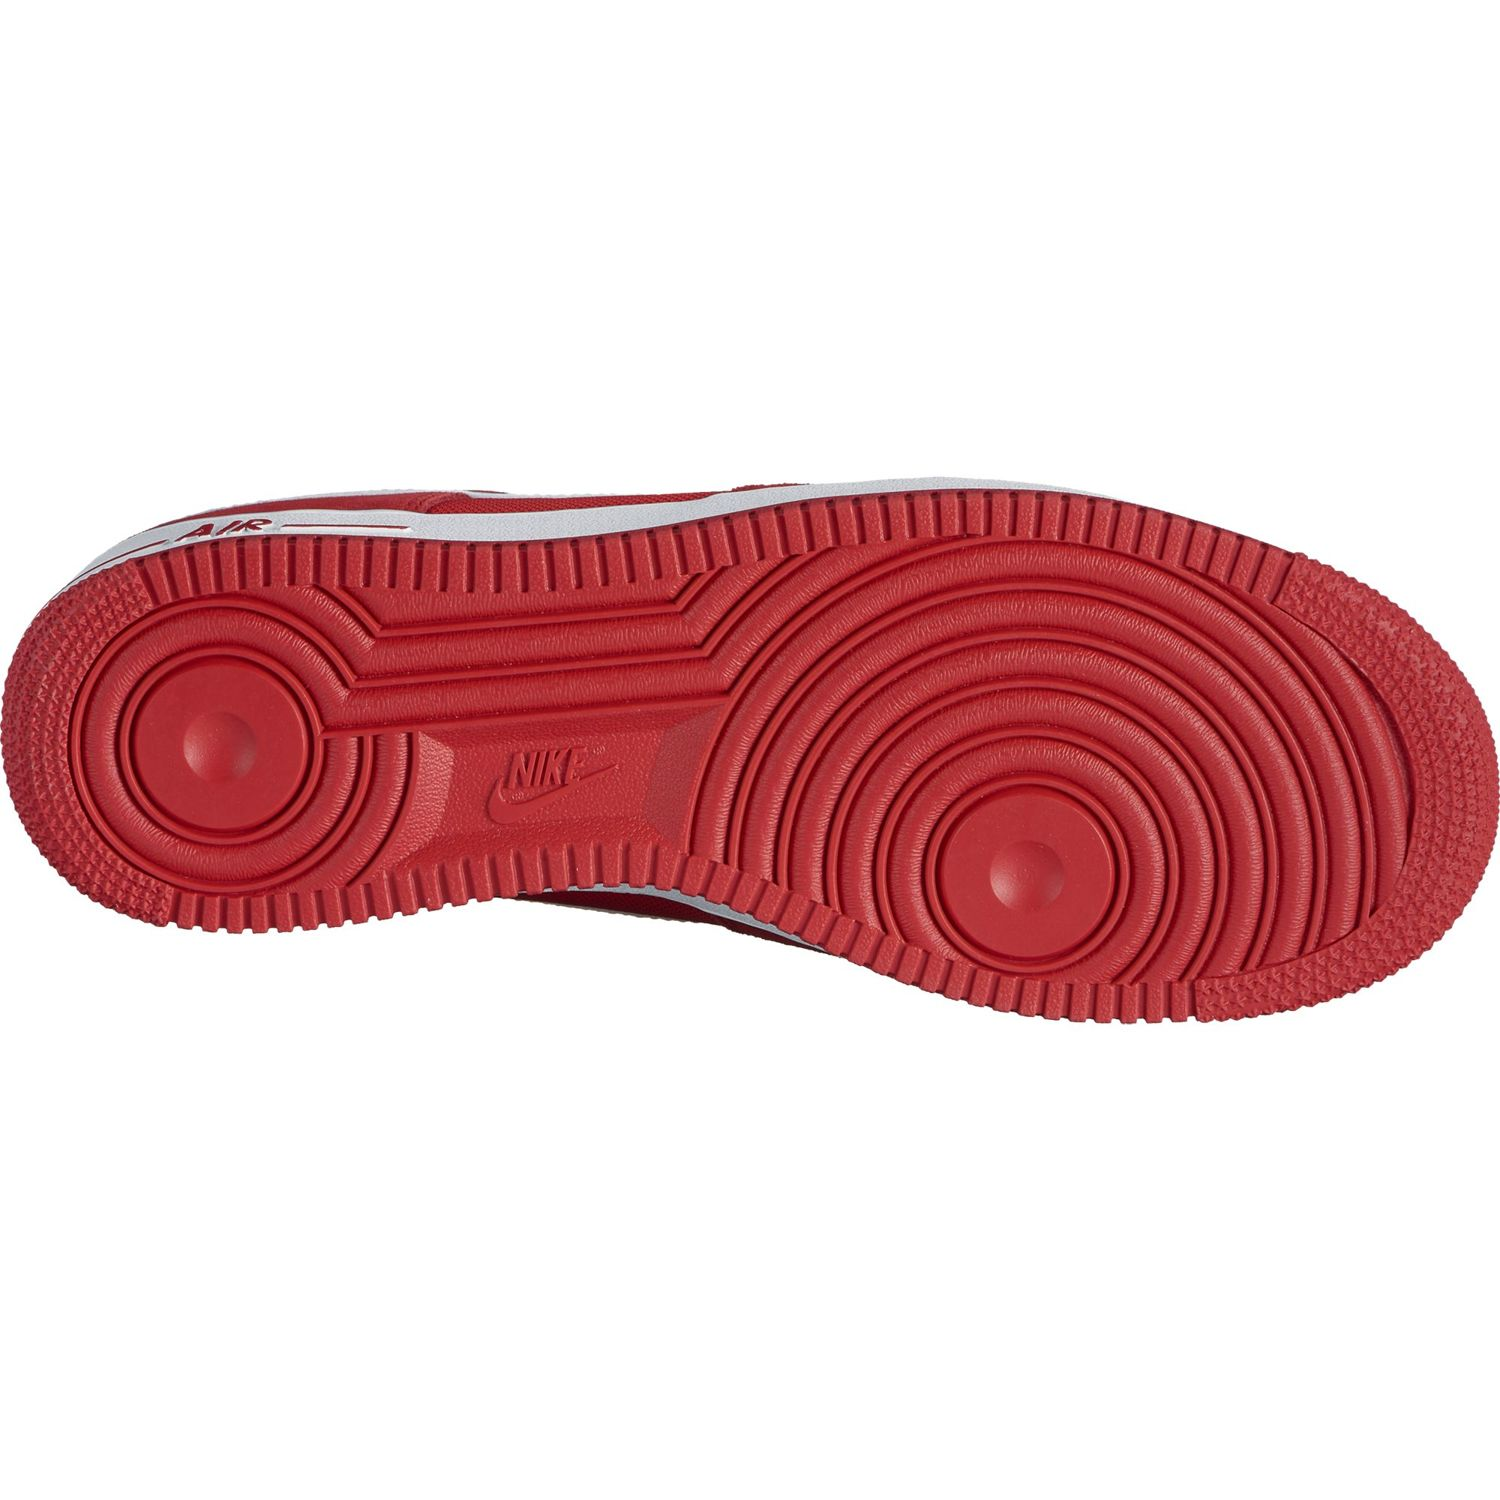 Nike Air Force 1 Low Gym Red 820266 601